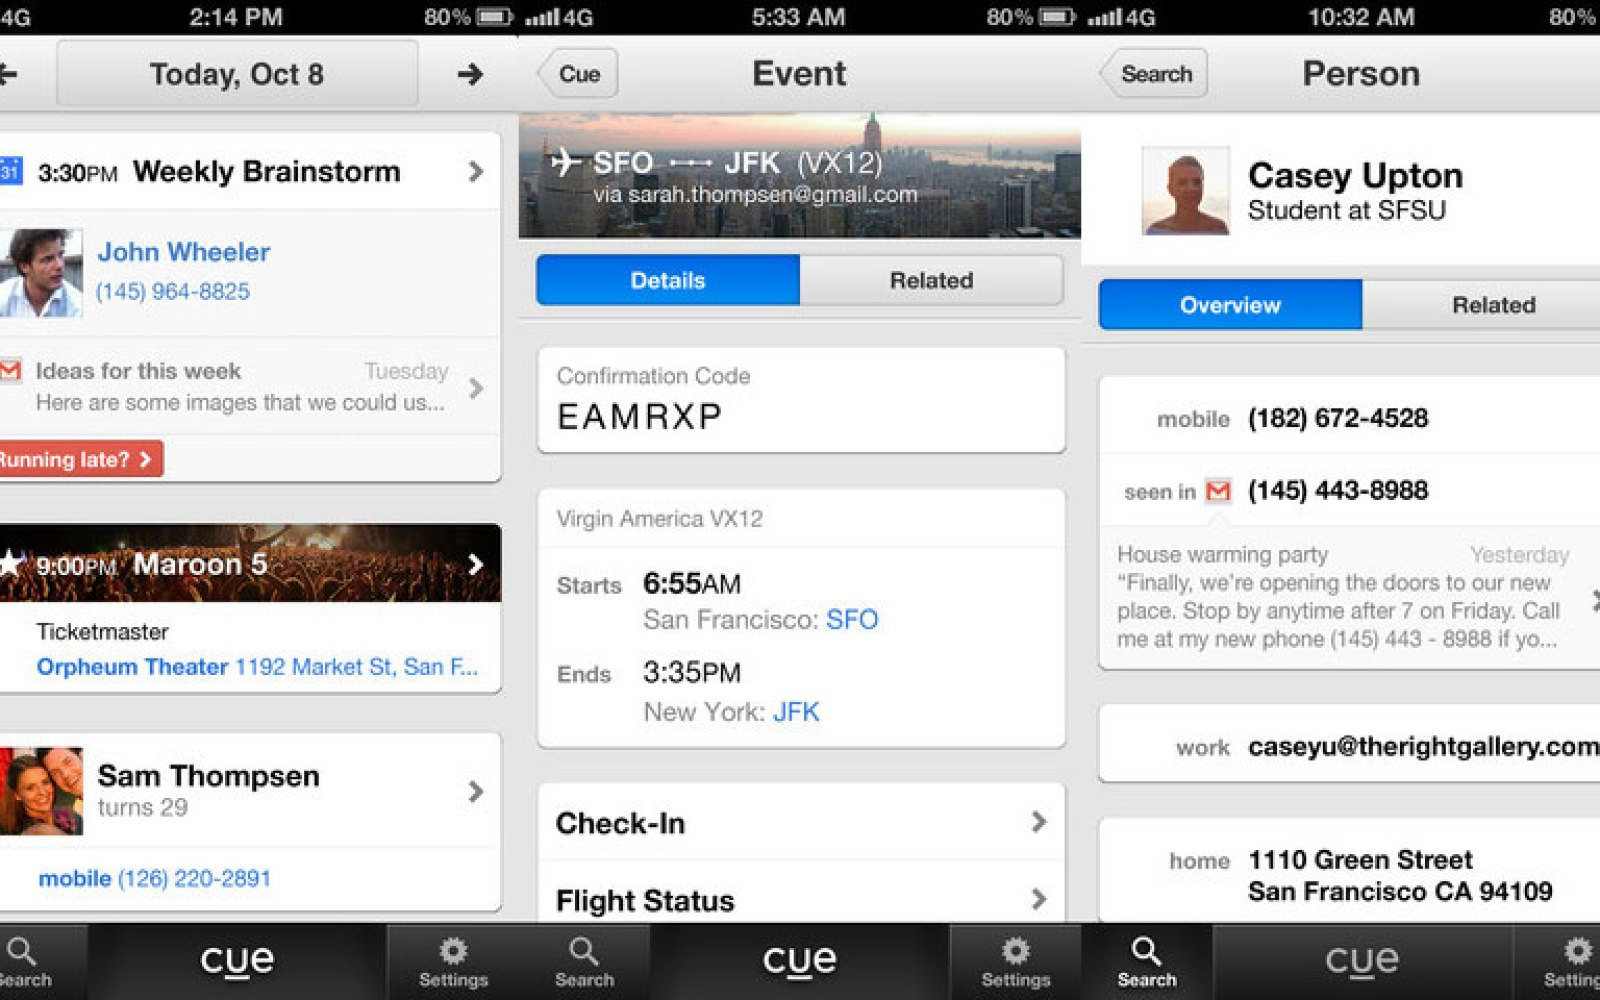 Apple seems to have acquired Cue personal assistant app, would fit well with Siri, Notification Center